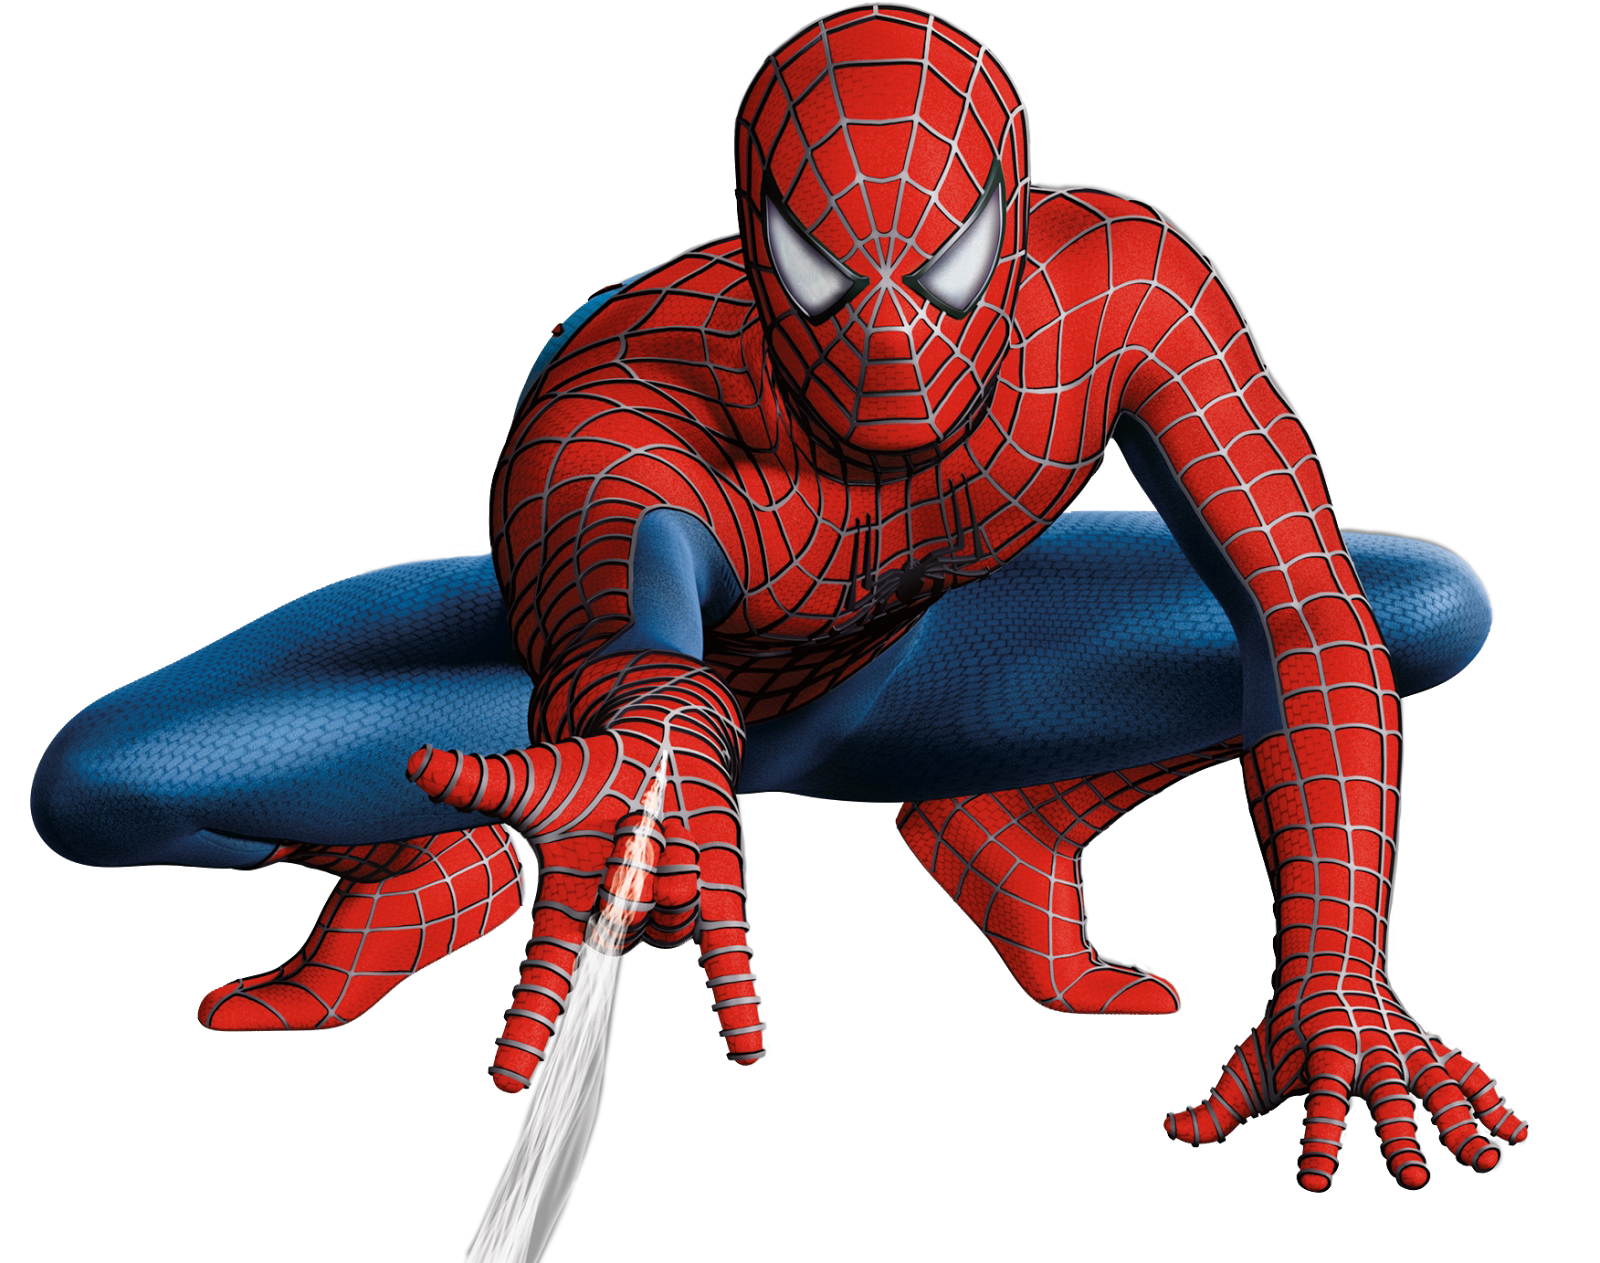 Spider Man Image Download